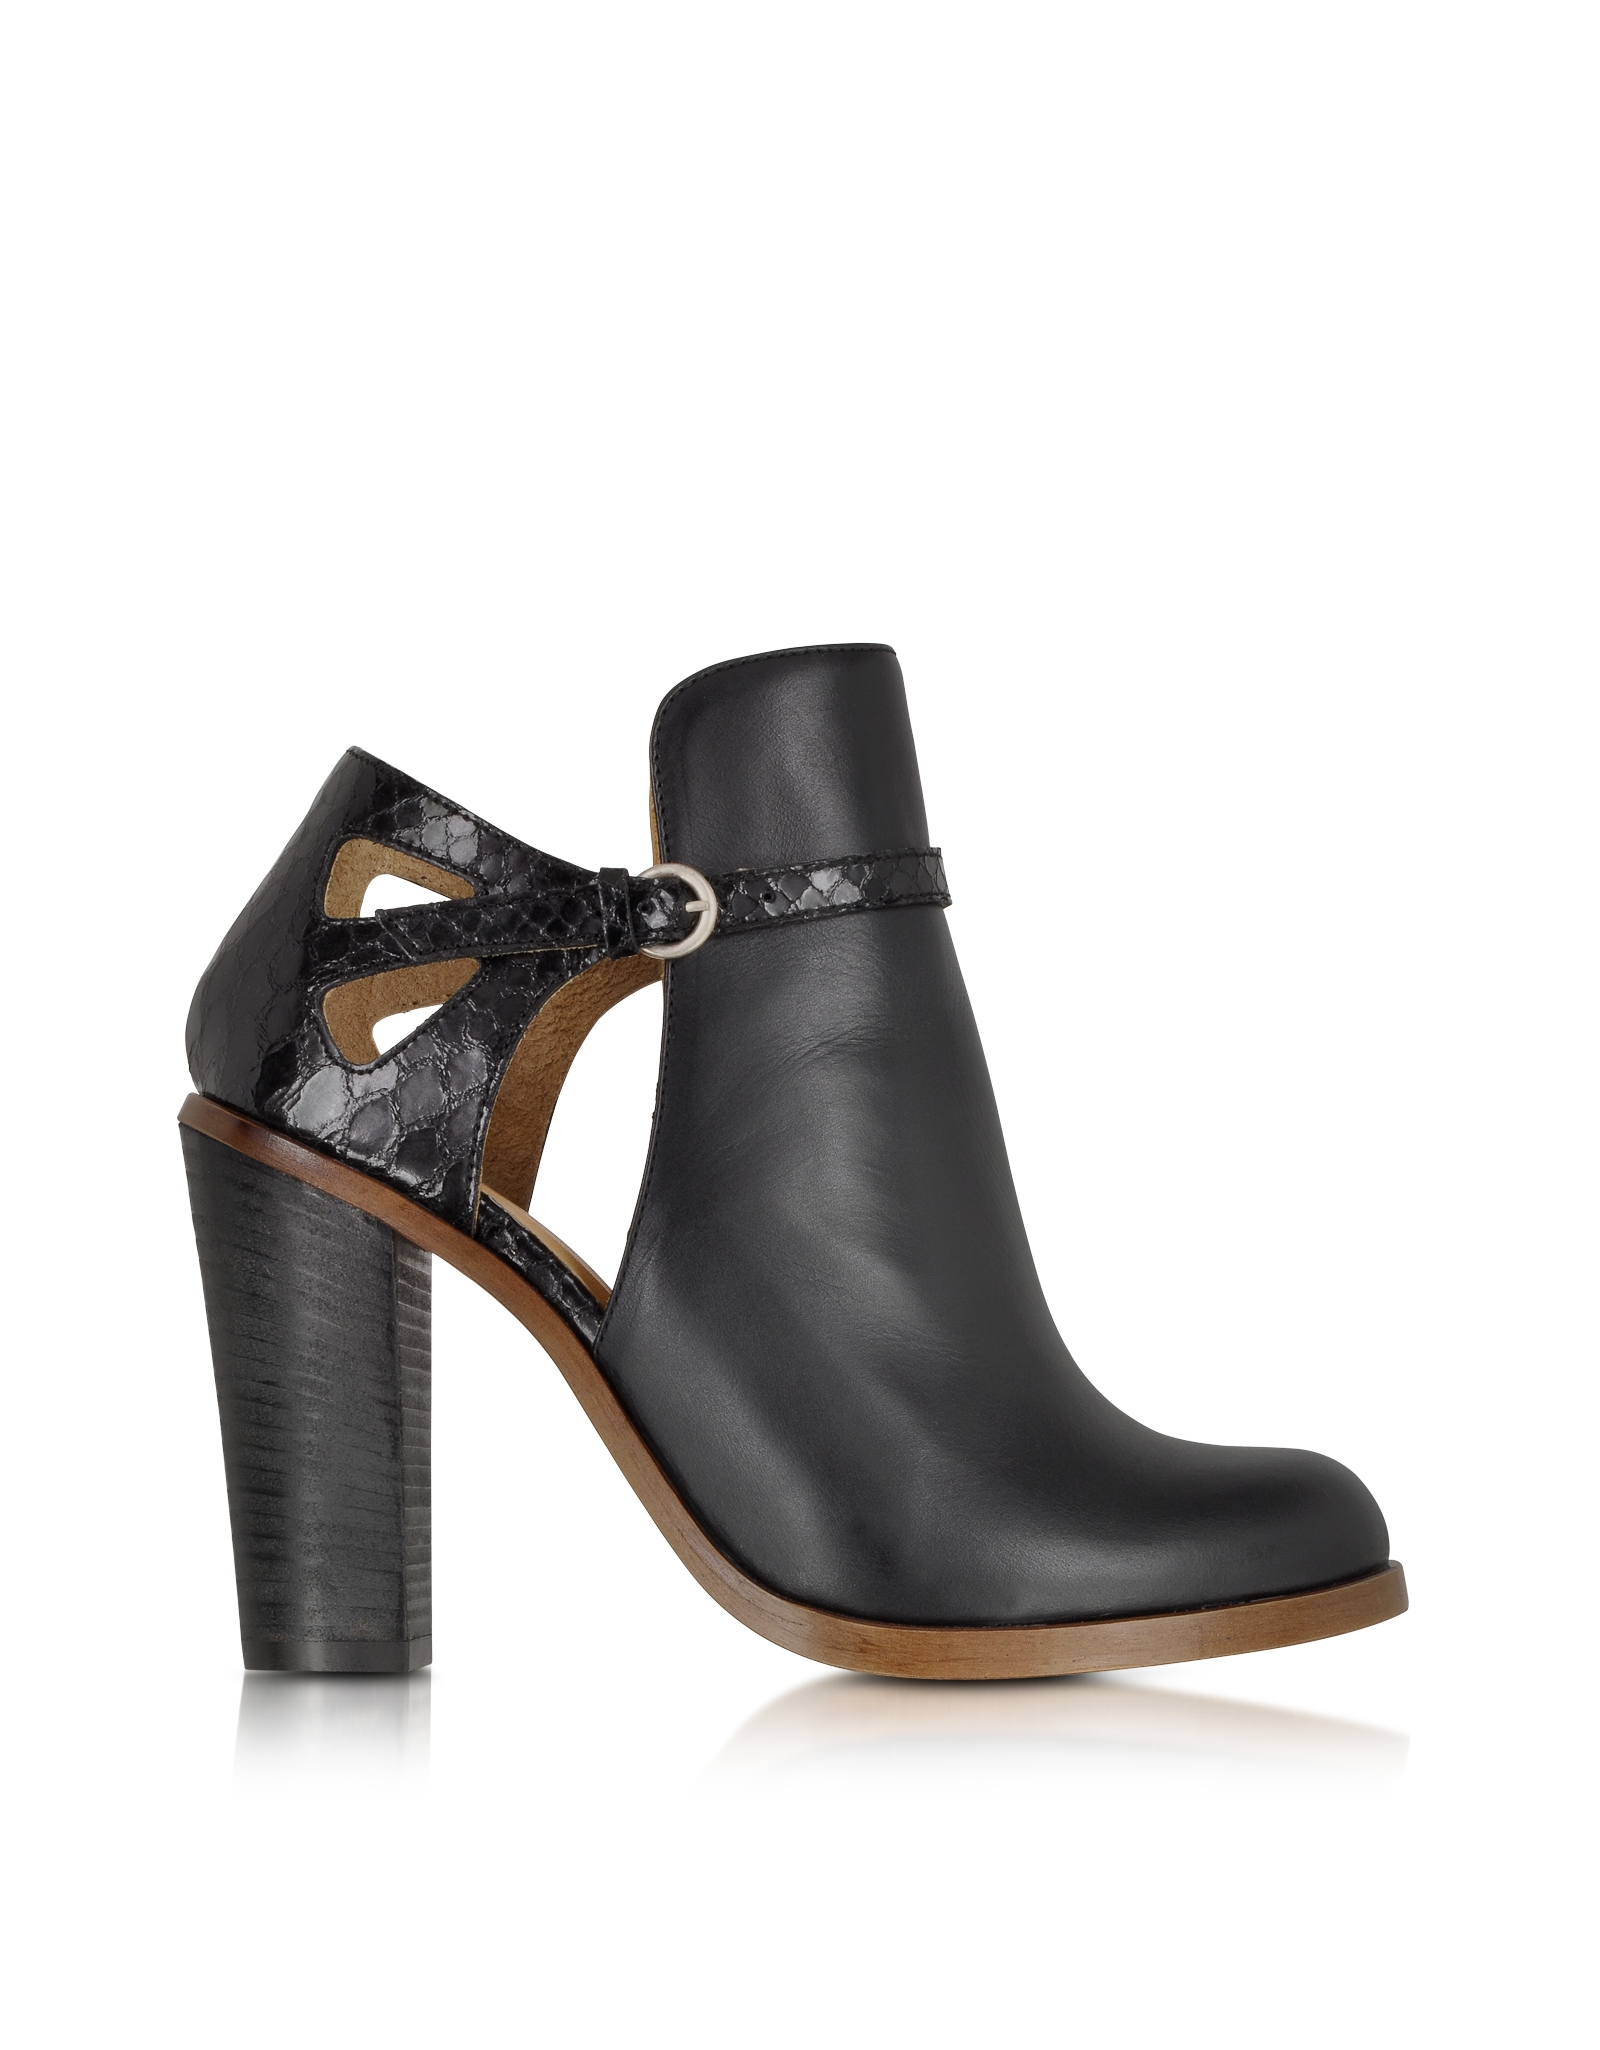 Mm6 by maison martin margiela Black Cut-Out Leather Ankle Boot in ...